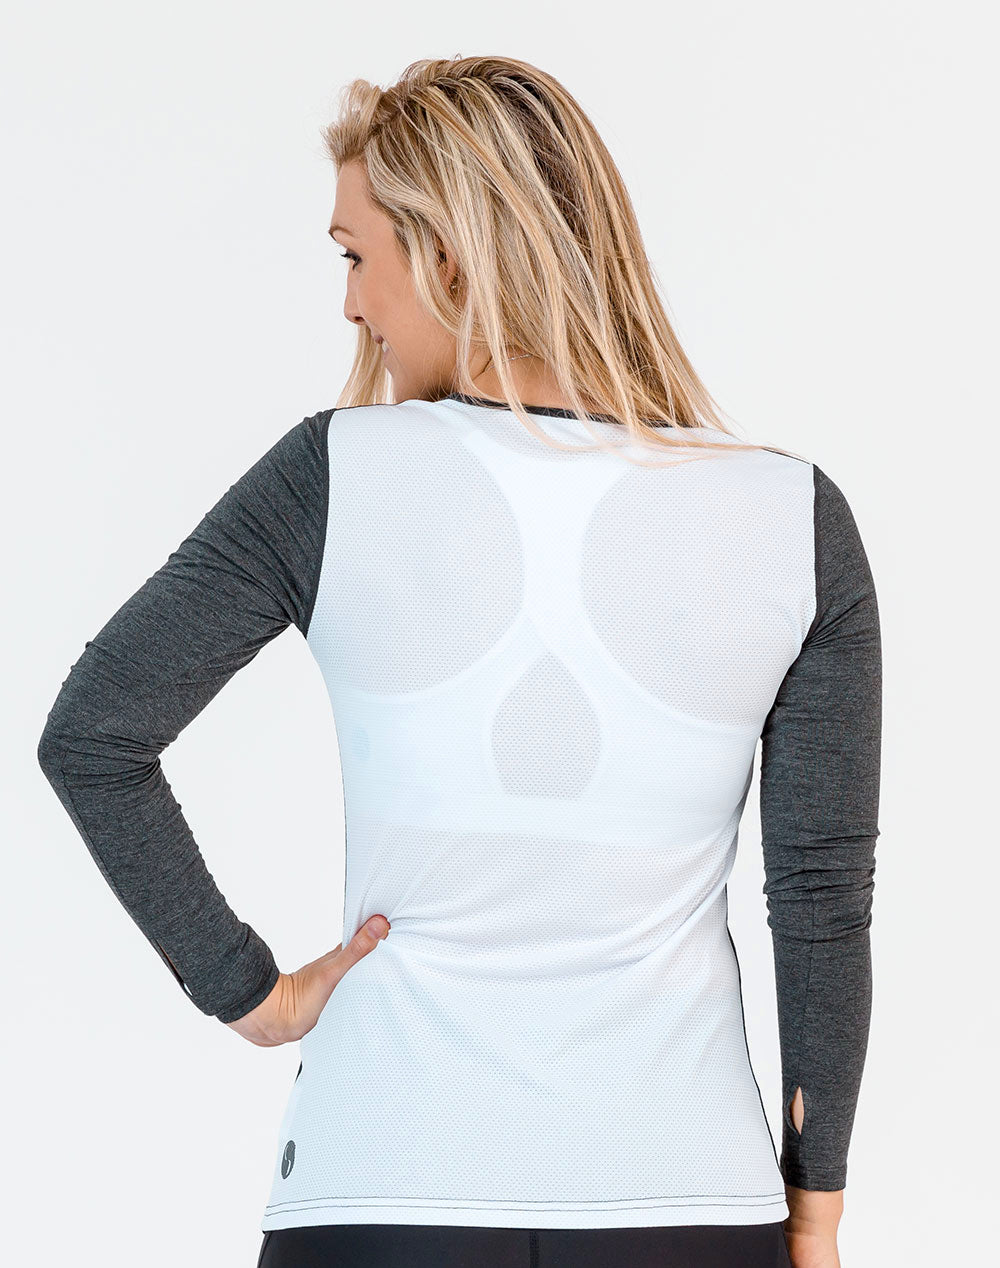 side view of a mum wearing a grey and white maternity top with long sleeves